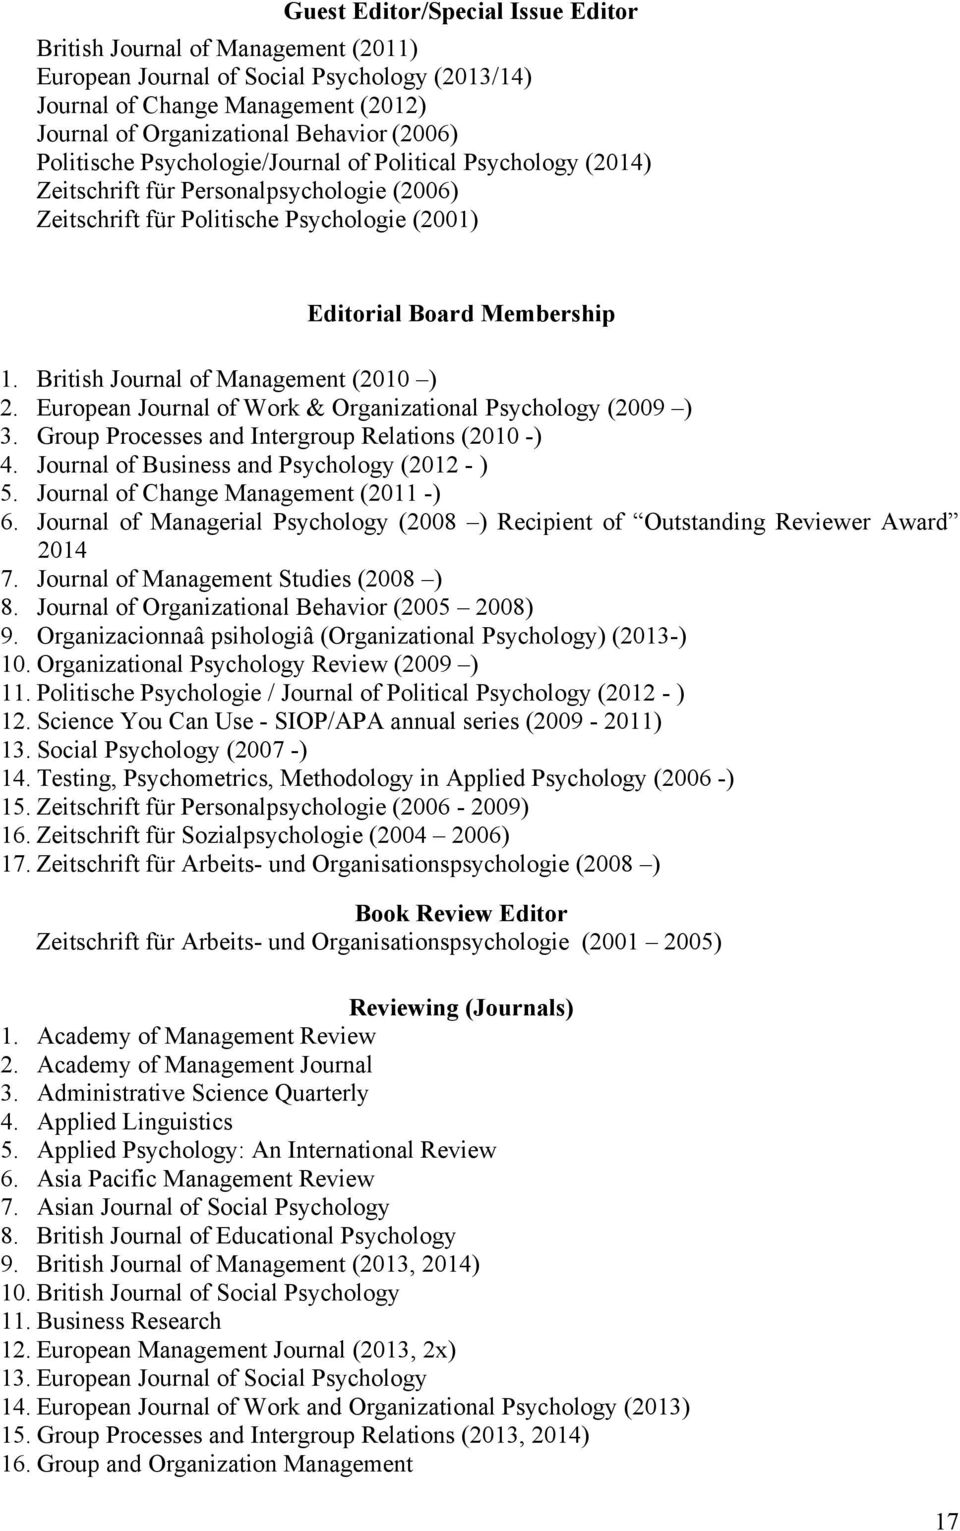 British Journal of Management (2010 ) 2. European Journal of Work & Organizational Psychology (2009 ) 3. Group Processes and Intergroup Relations (2010 -) 4.